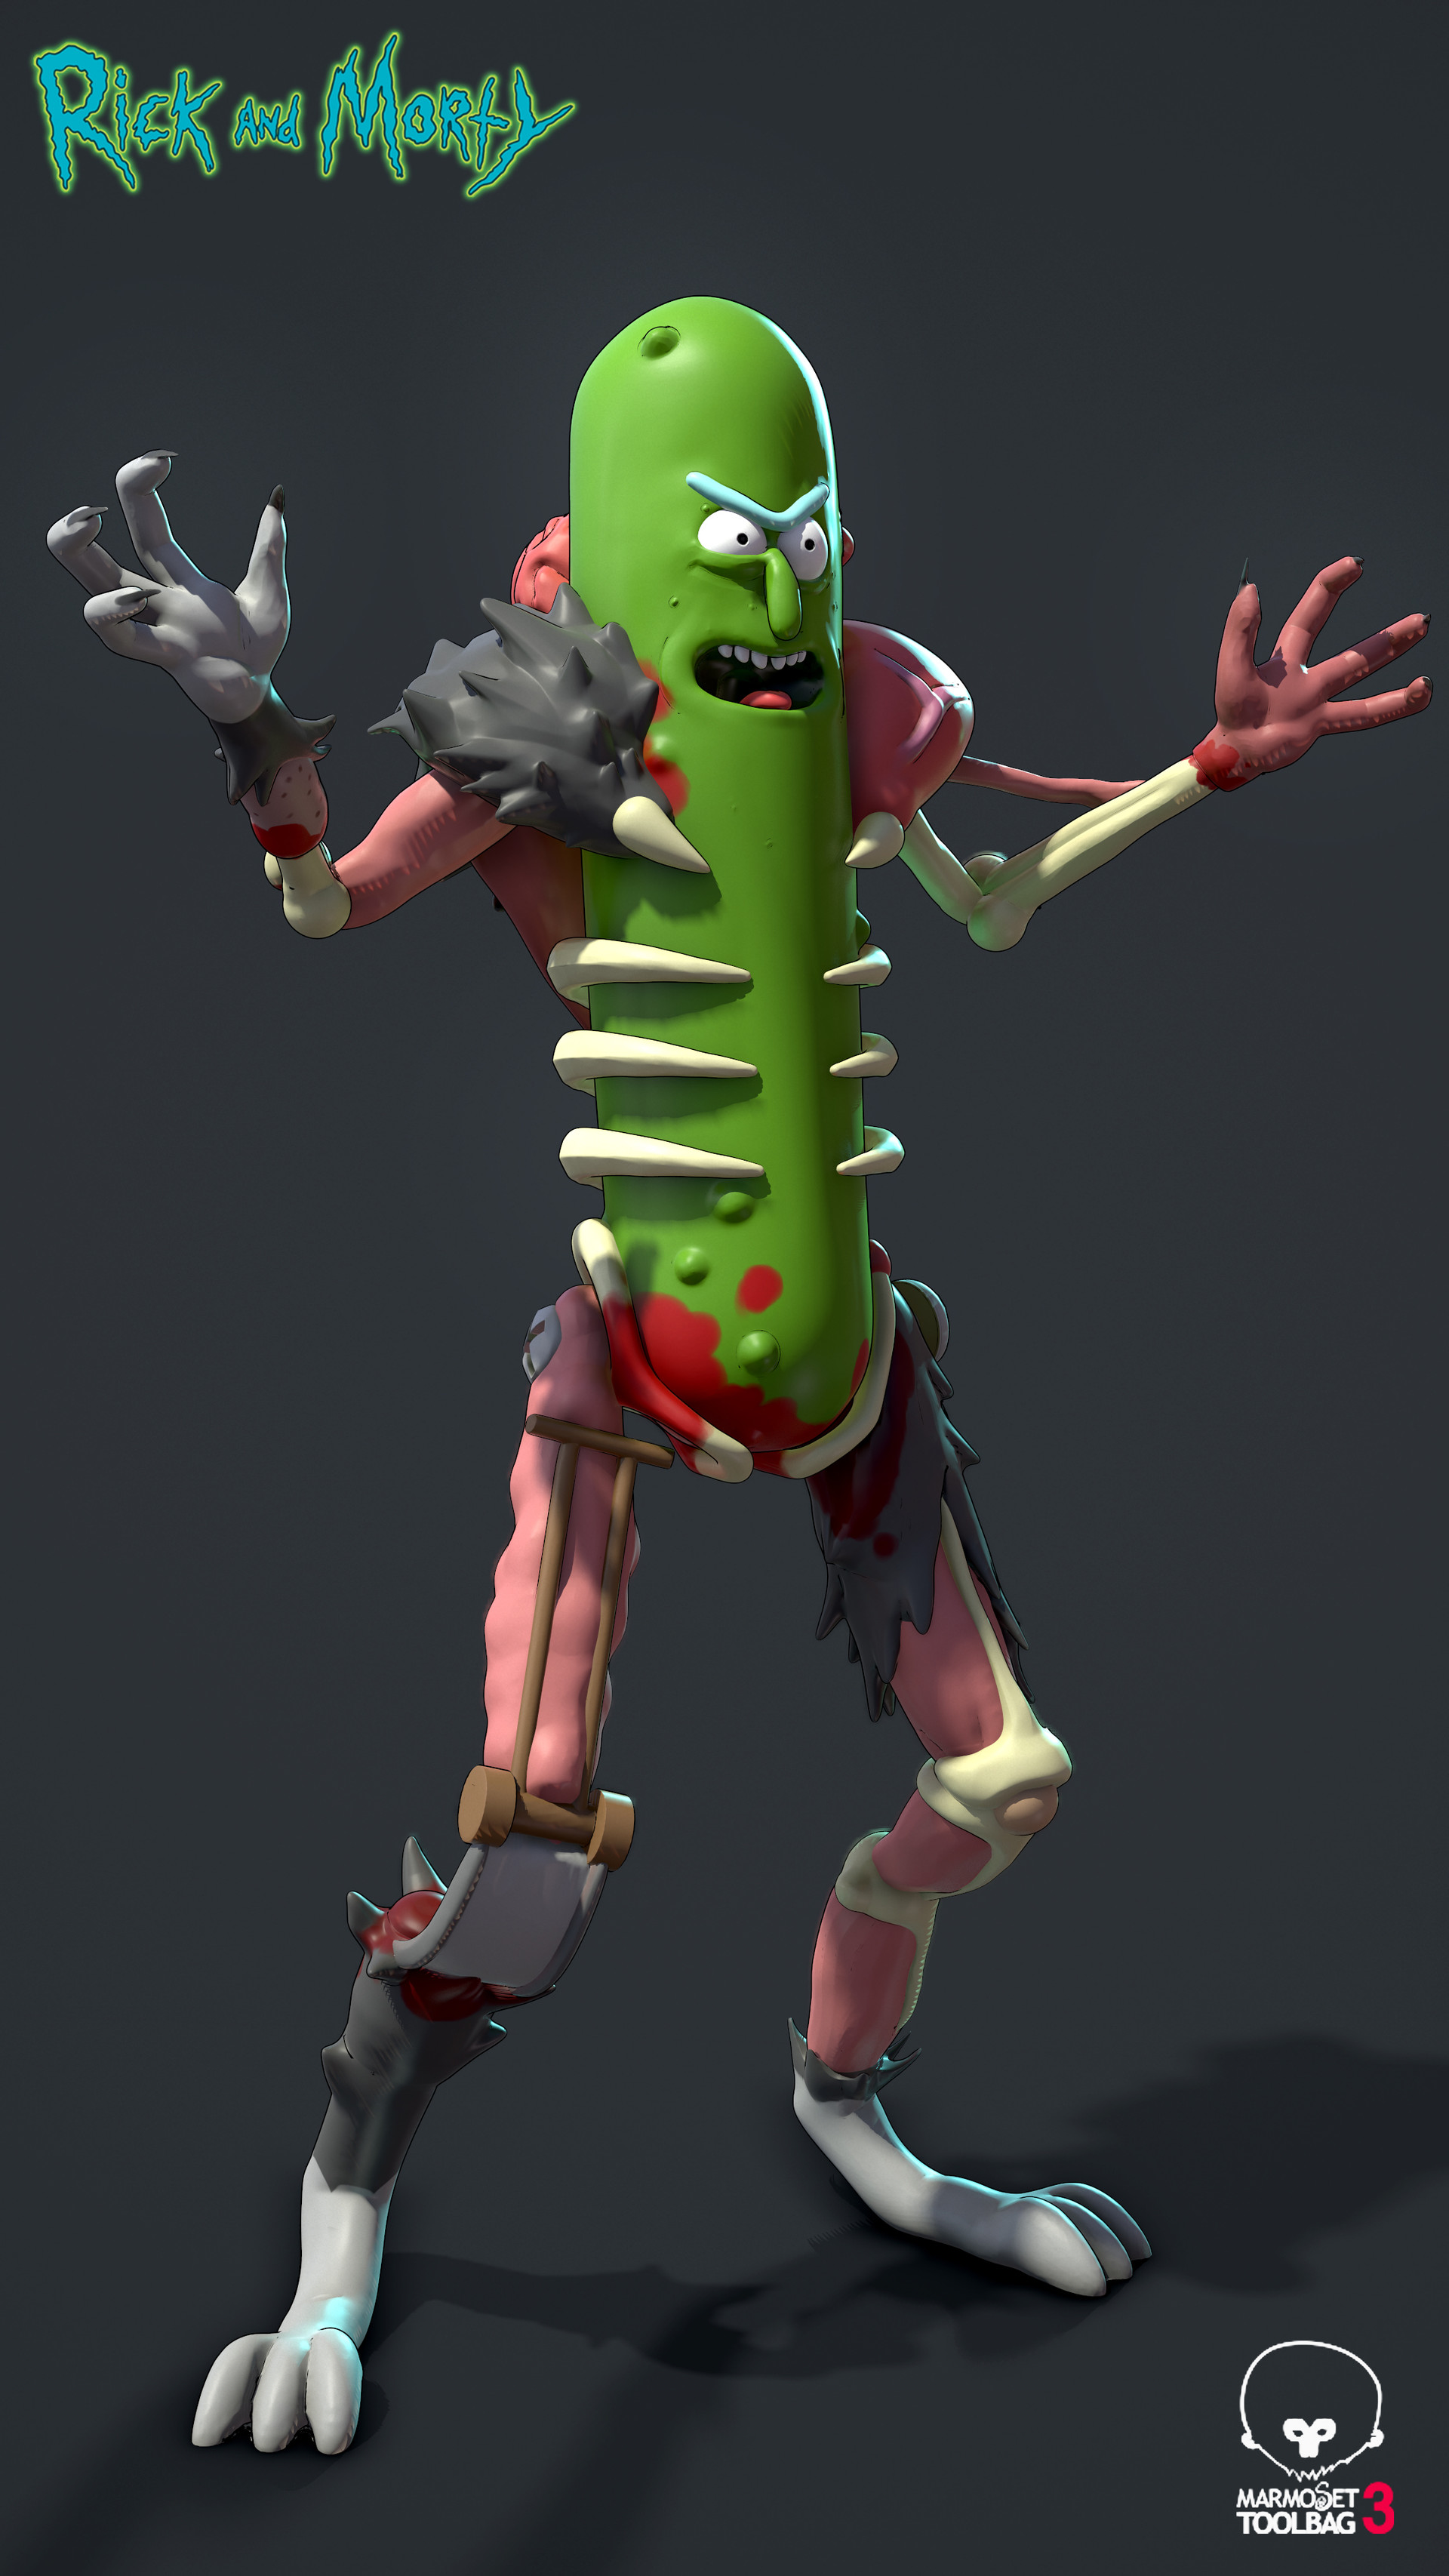 3d Pickle Rick Wallpaper Artstation Pickle Rick Paul Scott